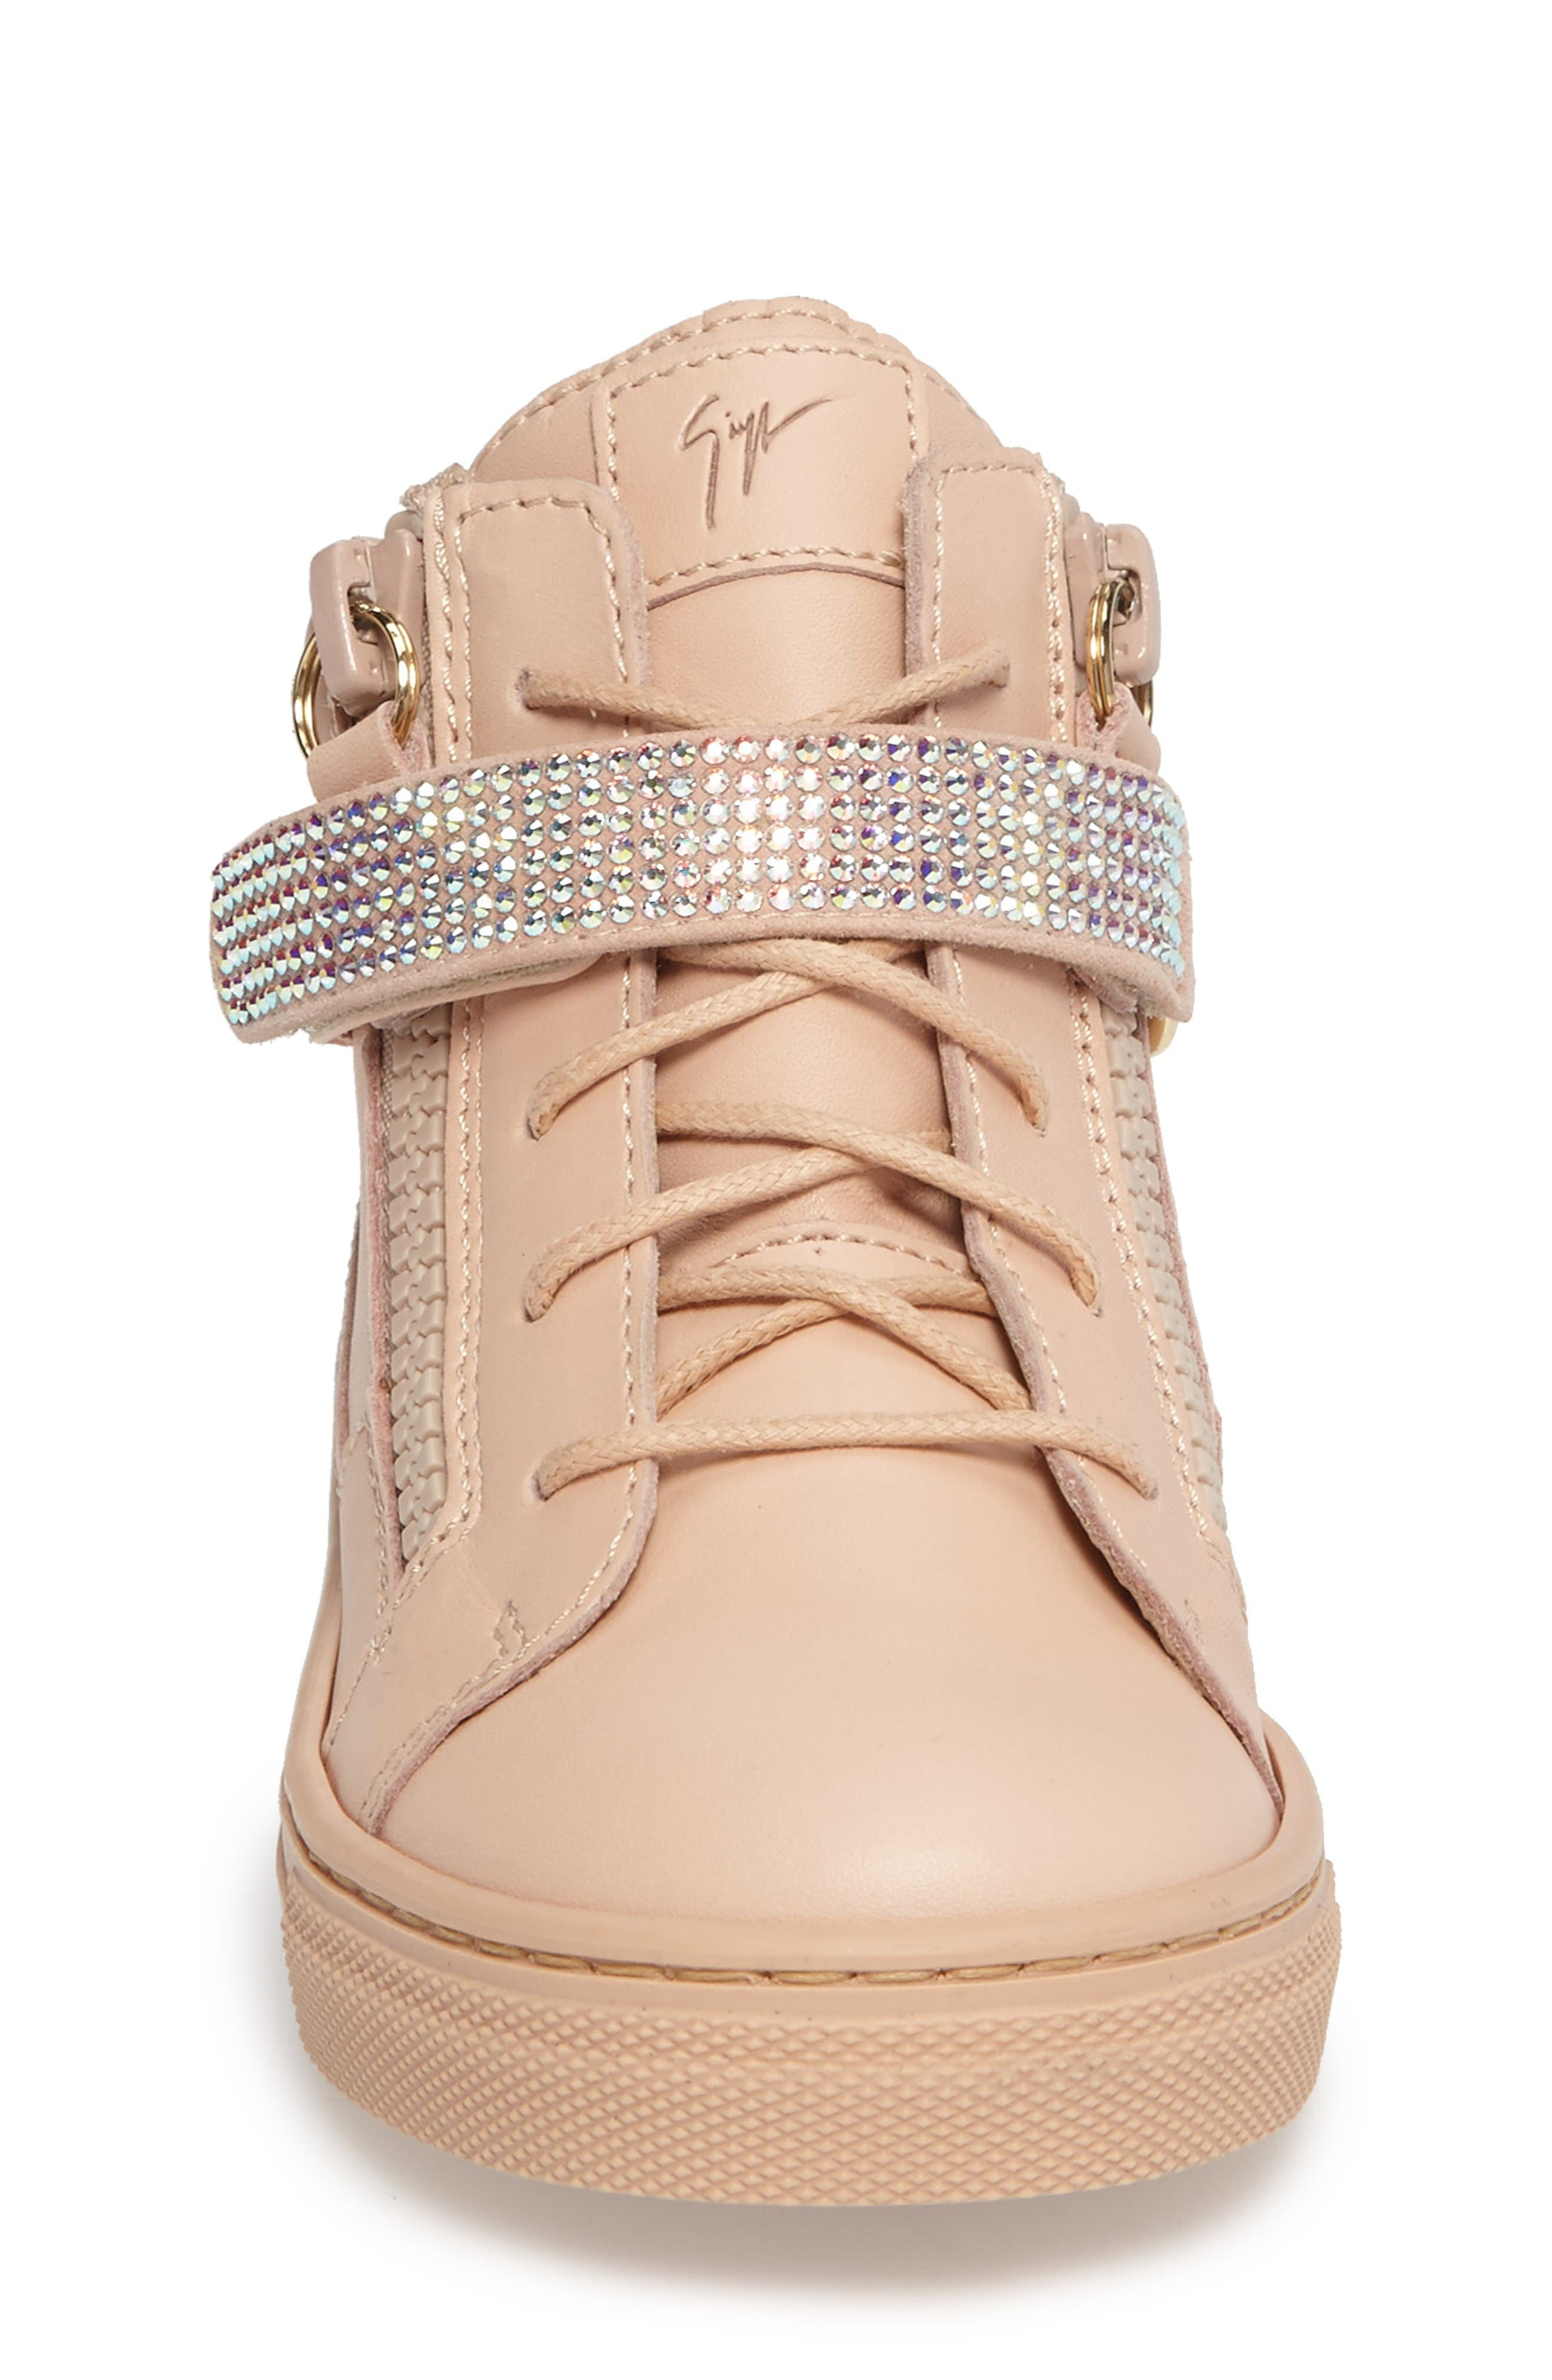 Alternate Image 3  - Giuseppe Zanotti Swarovski Crystal Embellished High Top Sneaker (Baby, Walker, Toddler & Little Kid)